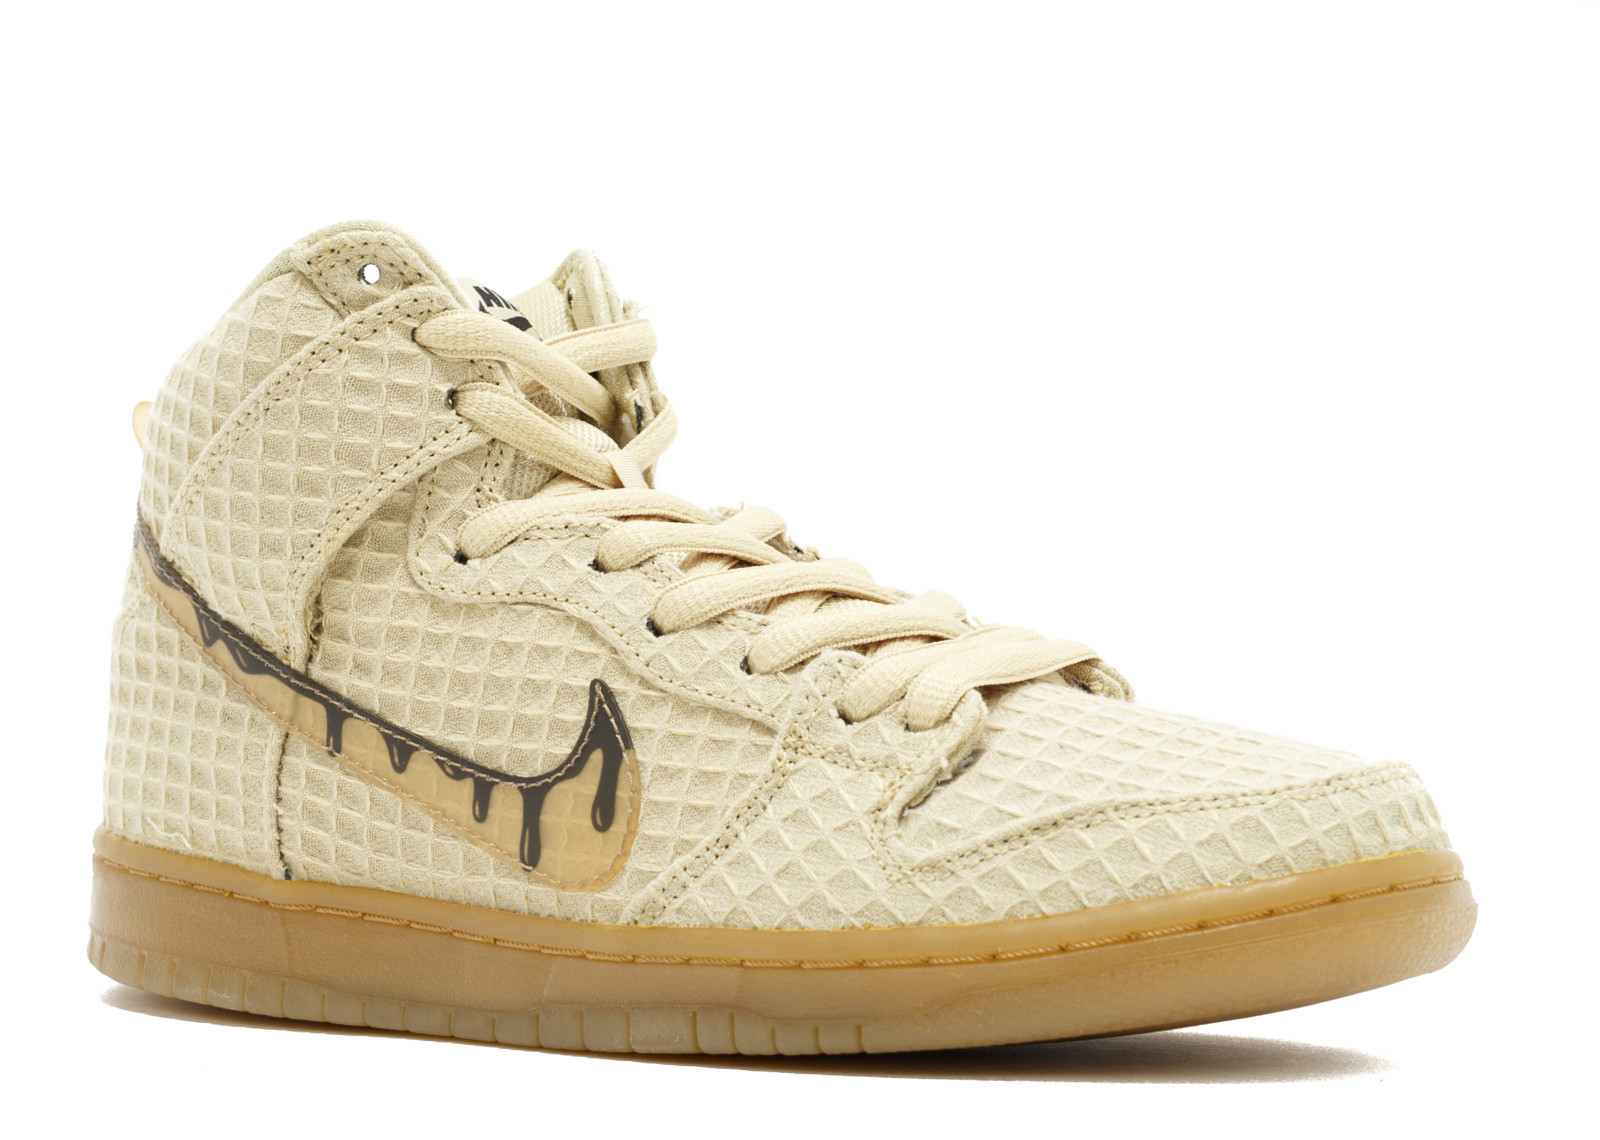 separation shoes c0666 82f64 ... store nike dunk high premium sb chicken and waffles 313171 722 walmart  f79dc 0ca52